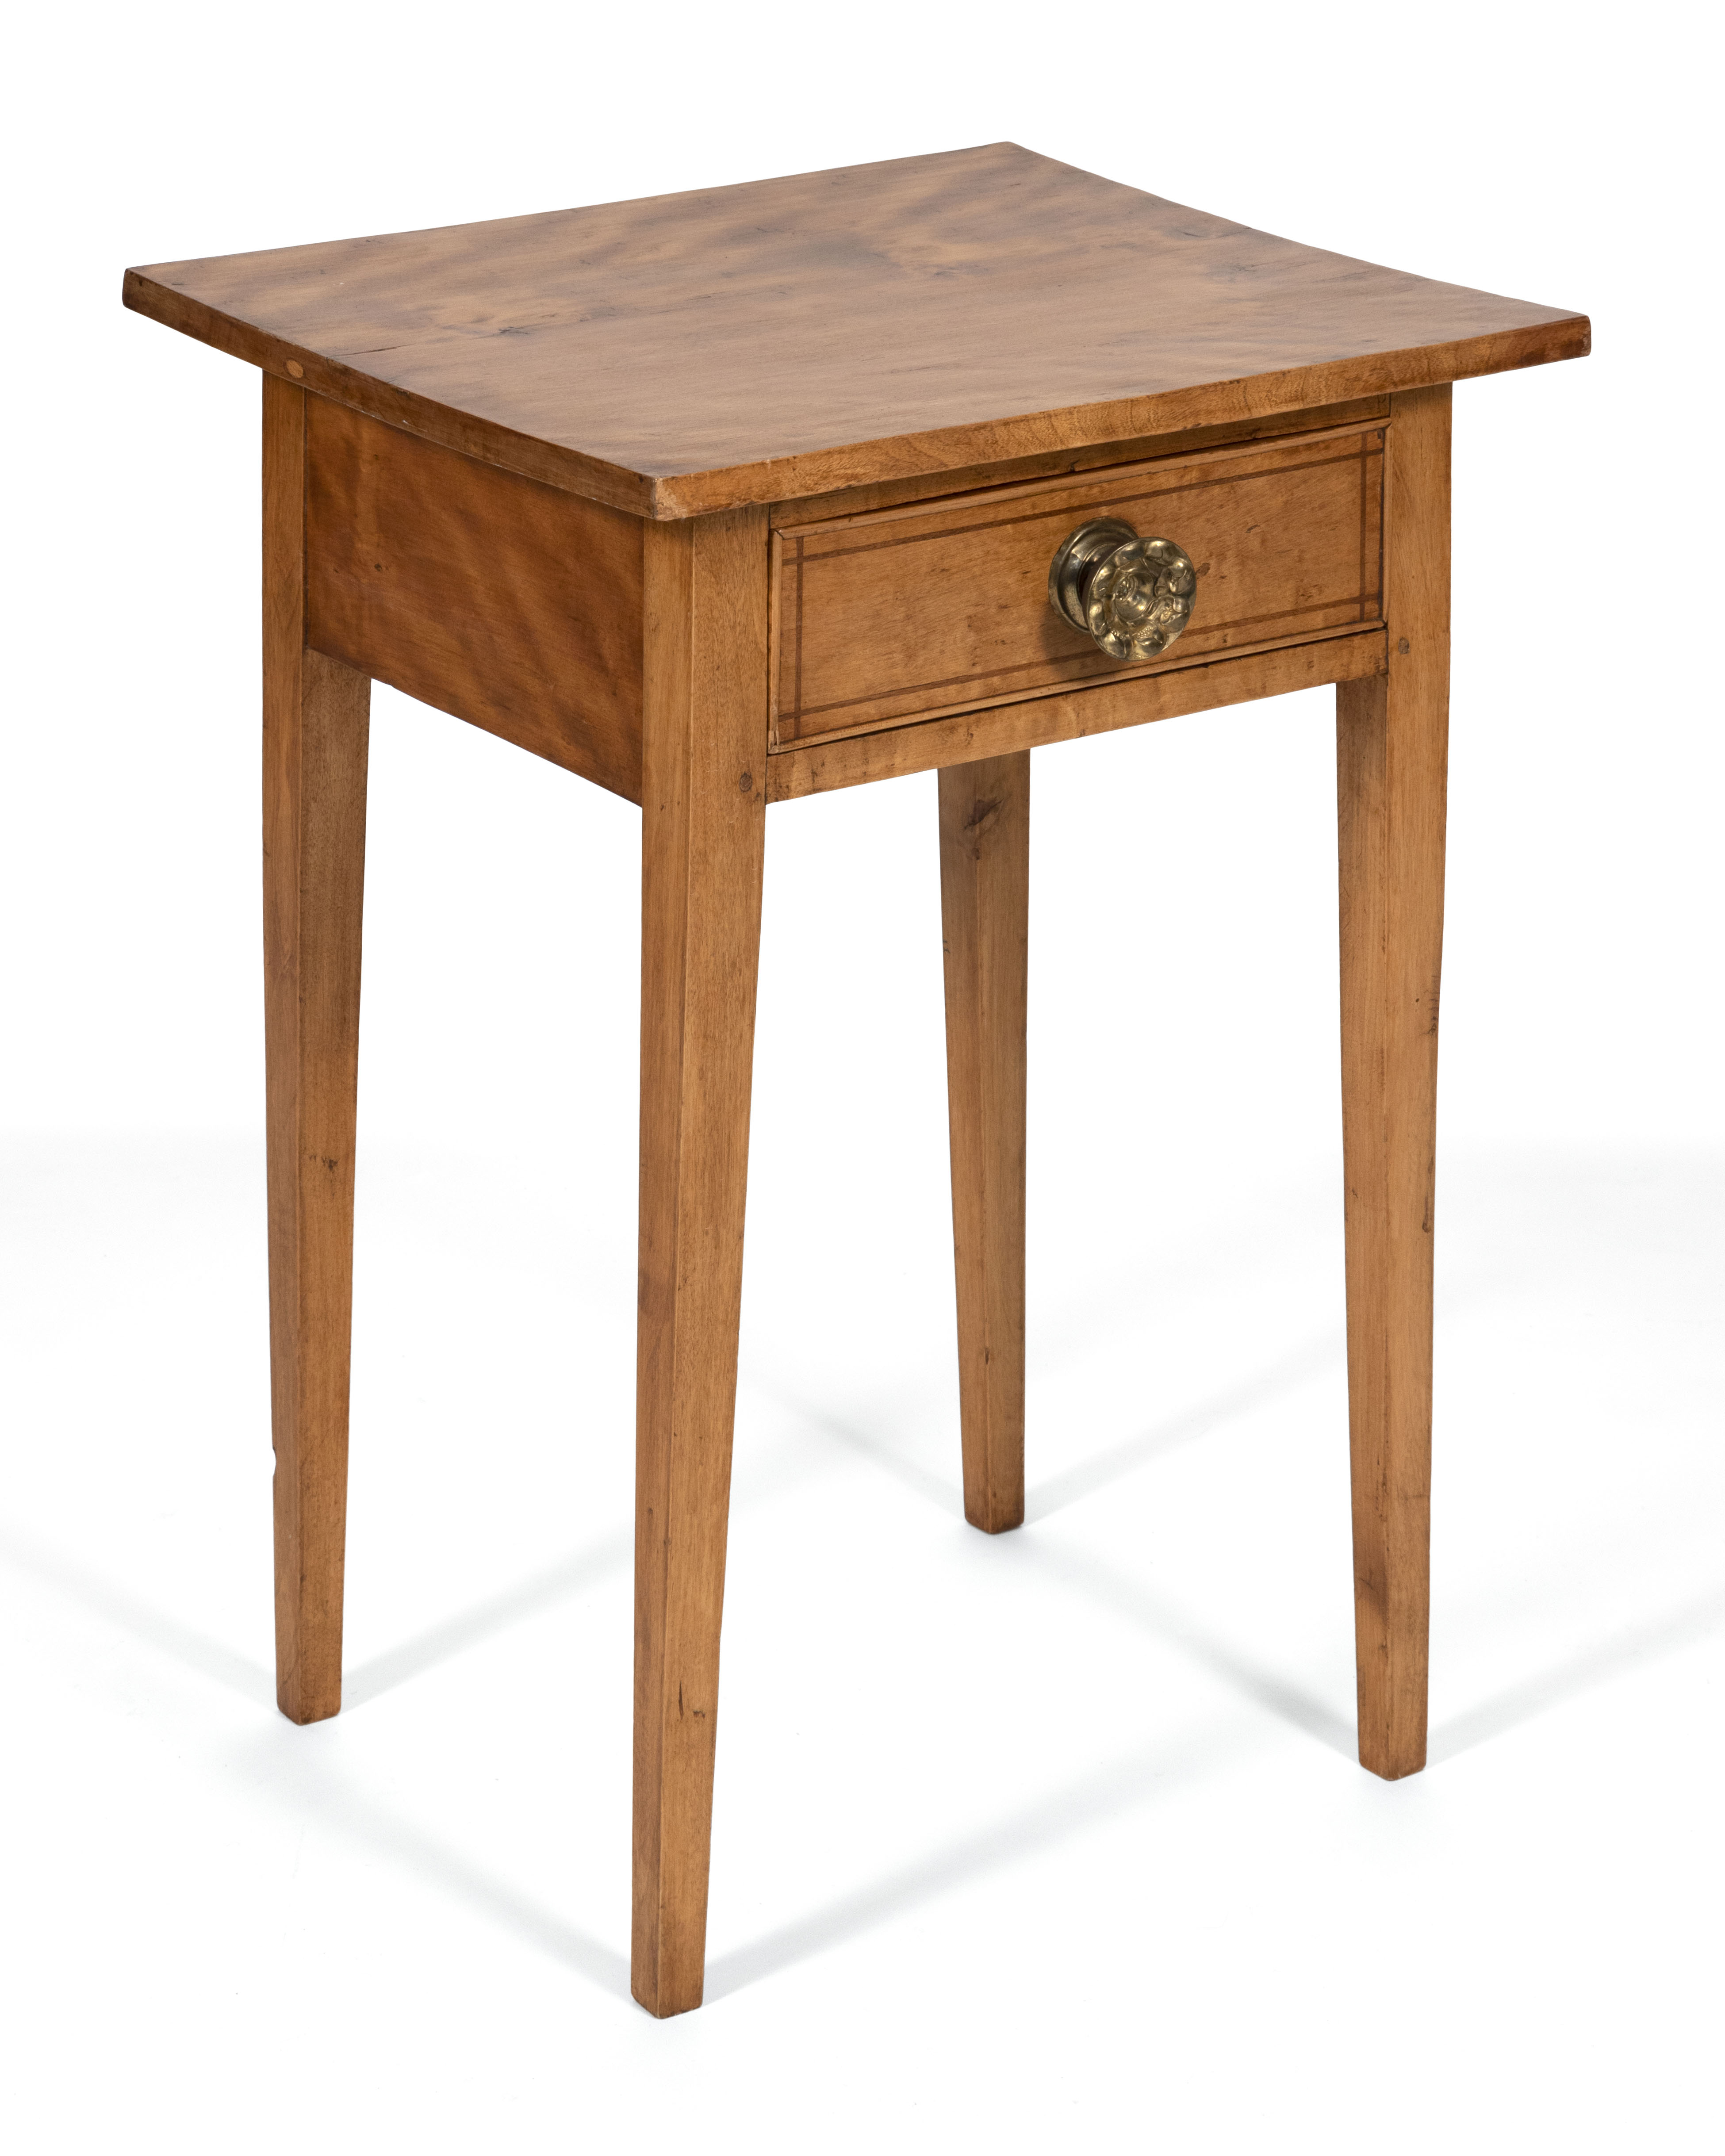 ONE-DRAWER STAND Circa 1810 Height 27.75